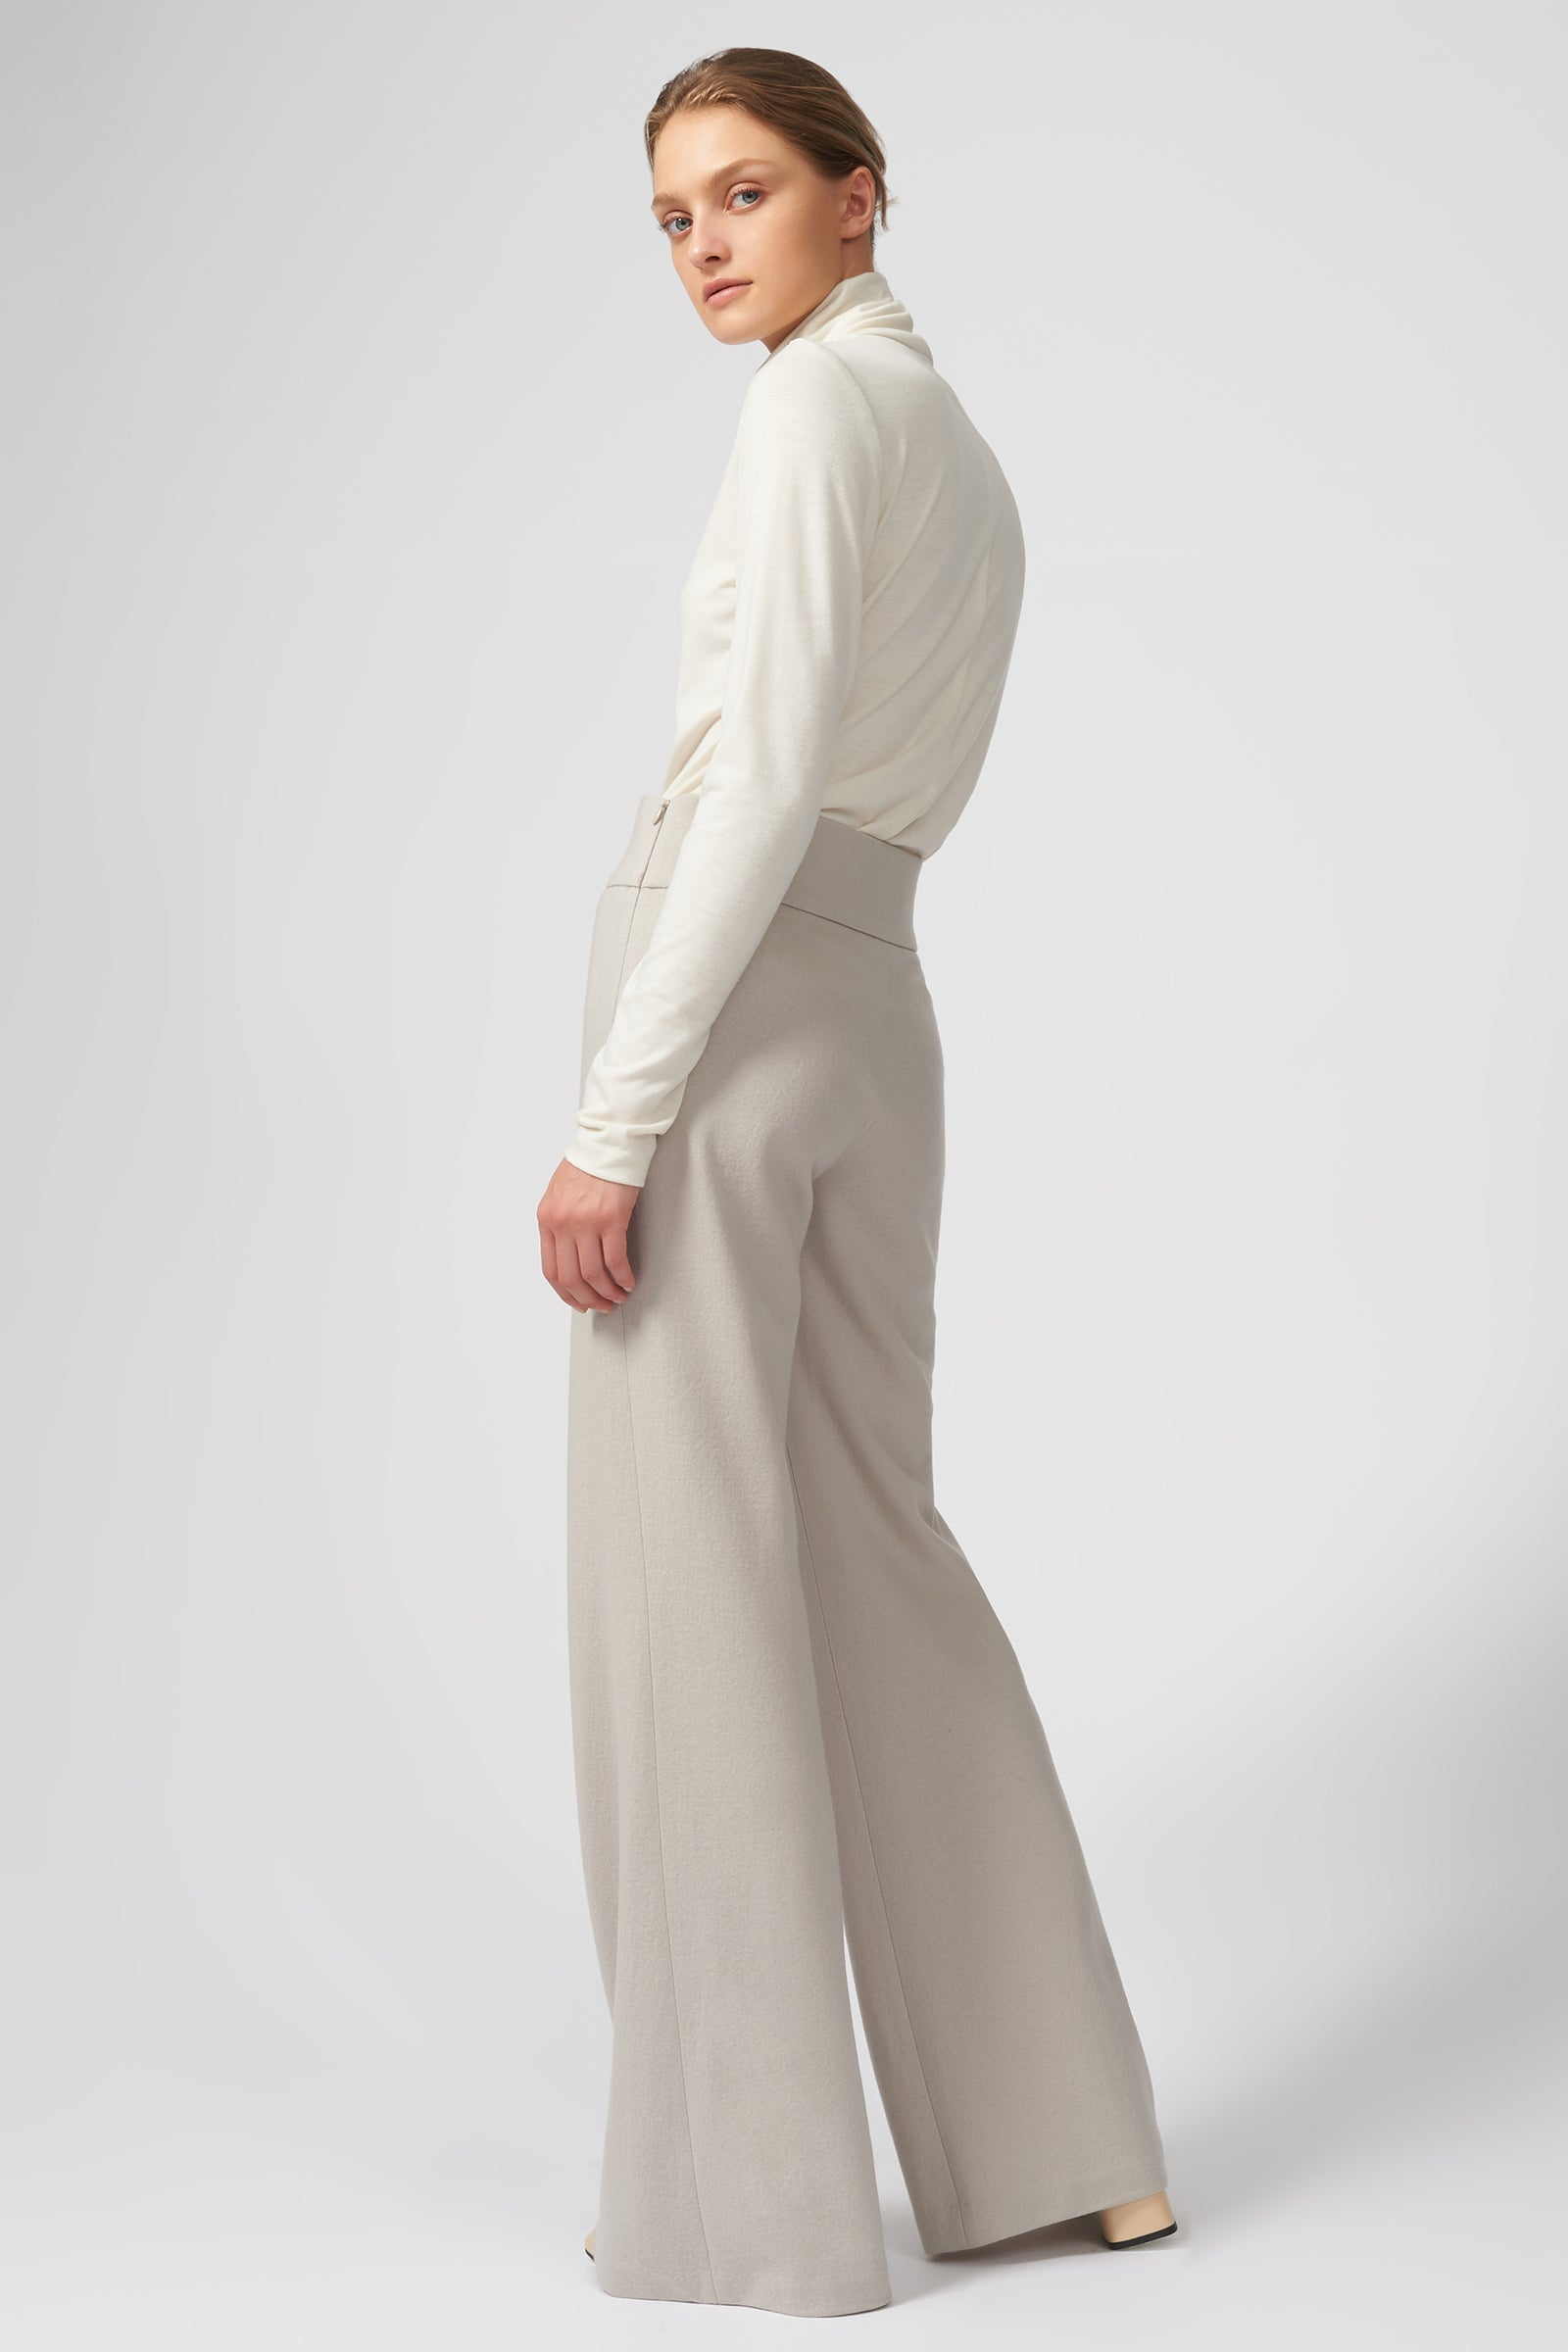 Kal Rieman Felted Jersey Wide Leg Pant in Mink on Model Full Front View